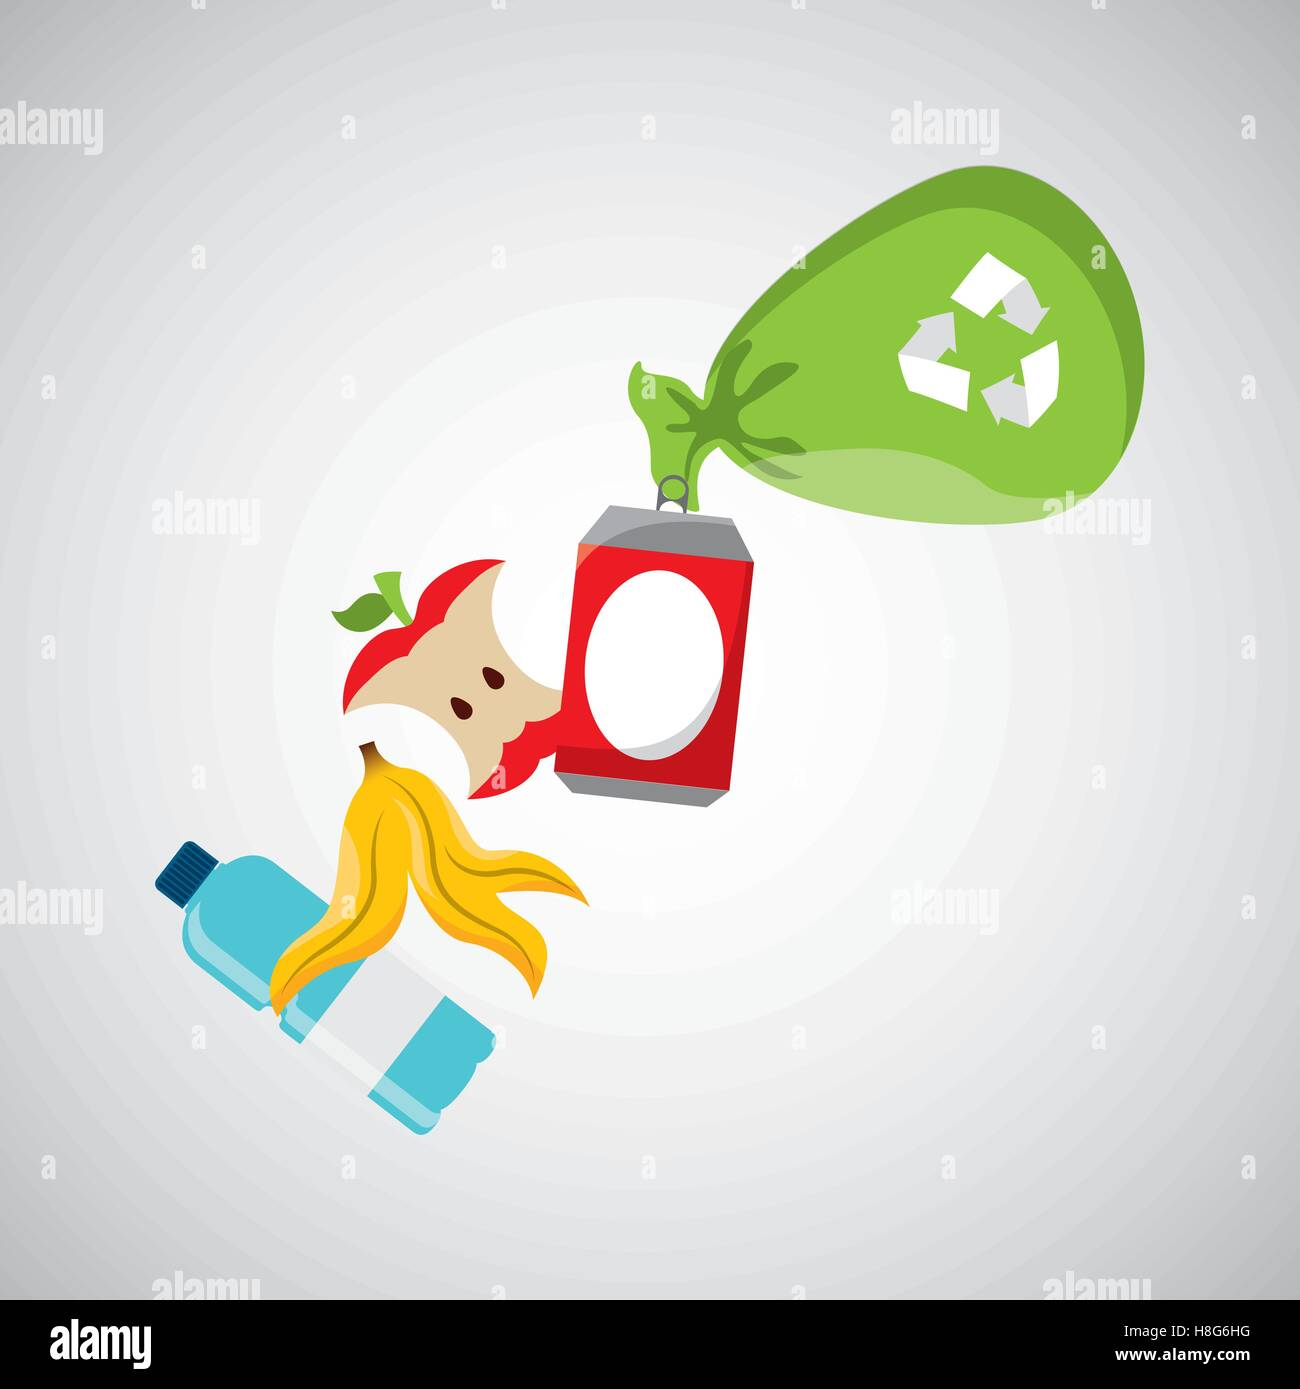 concept recycling process trash icond design vector illustration eps 10 - Stock Vector